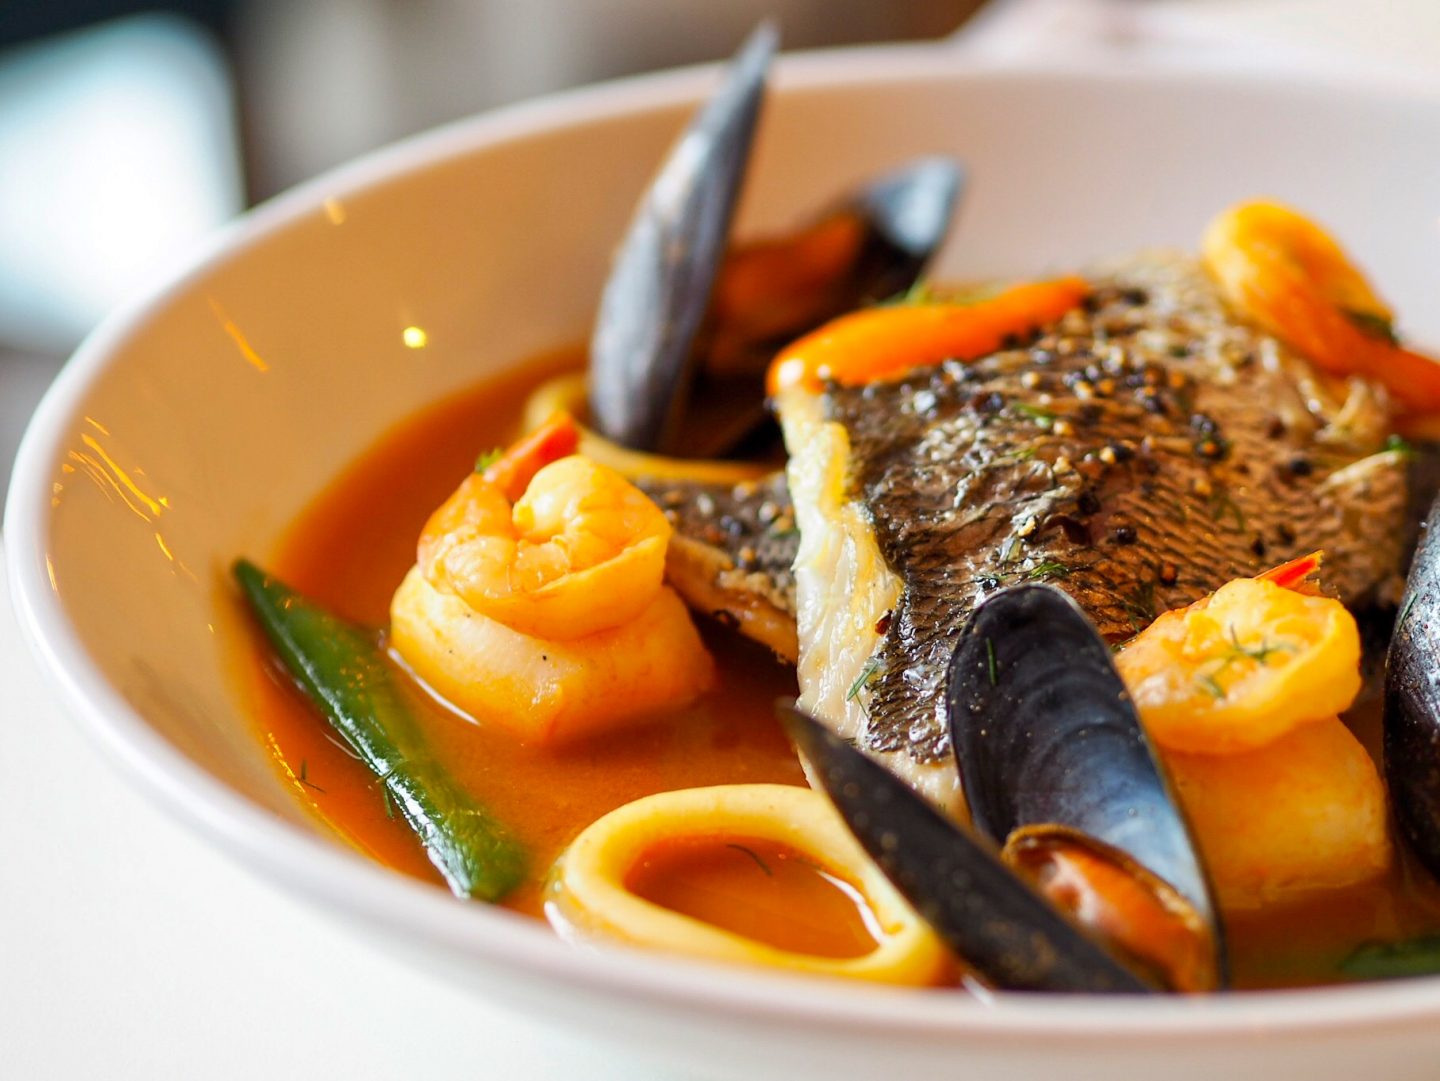 Fish stew - back to work as a photographer